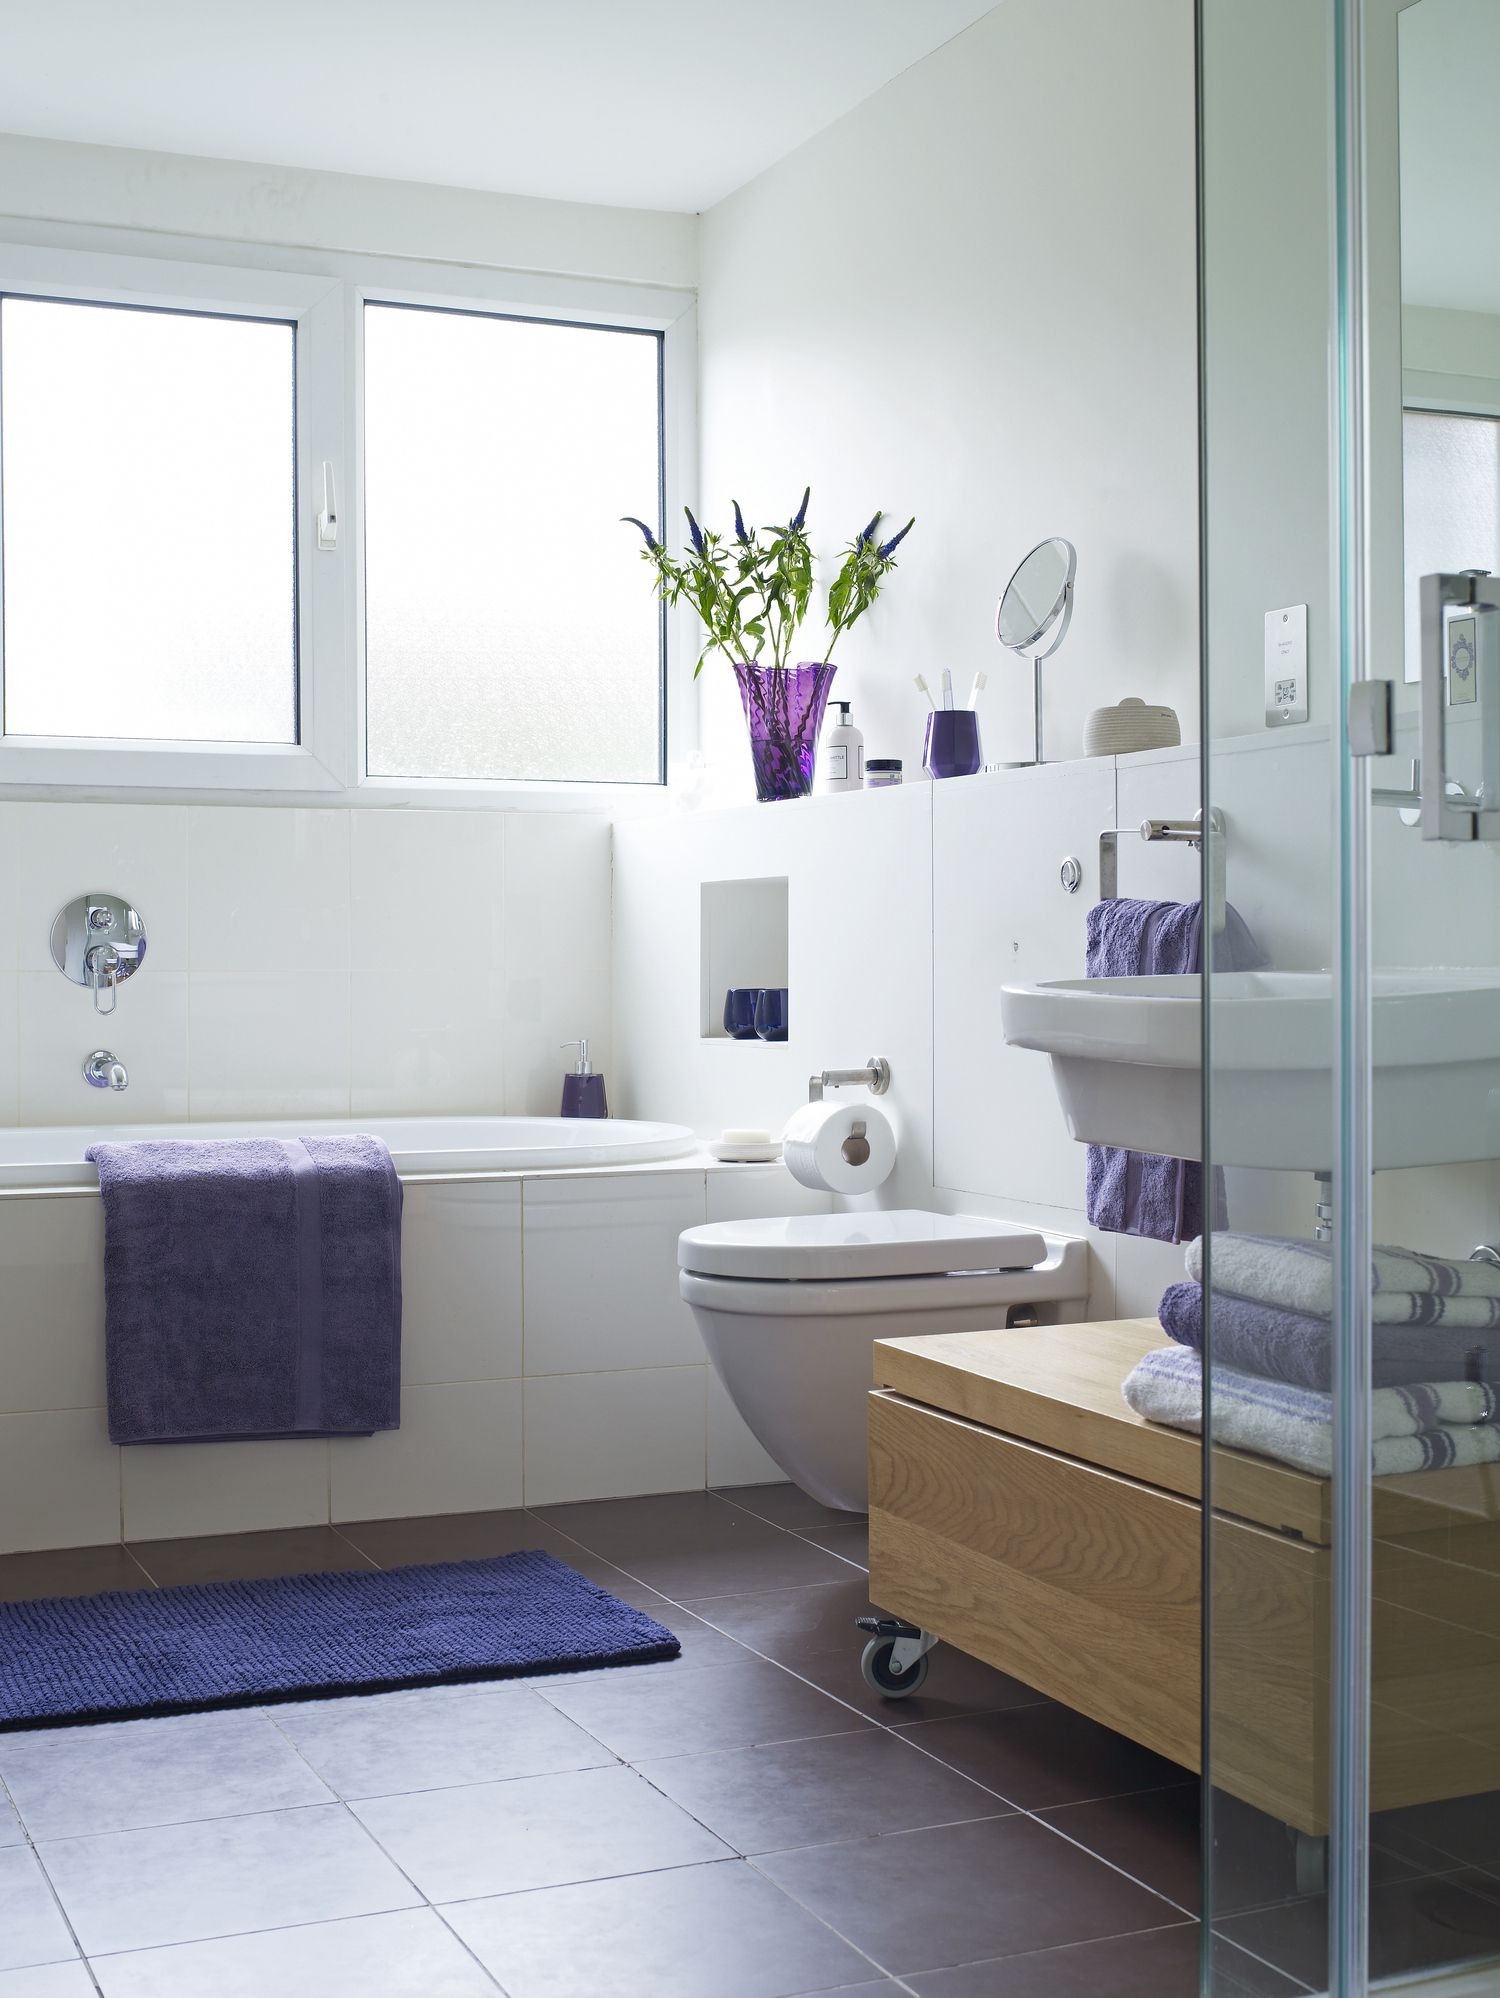 Best ideas about Small Bathroom Remodel . Save or Pin 25 Killer Small Bathroom Design Tips Now.